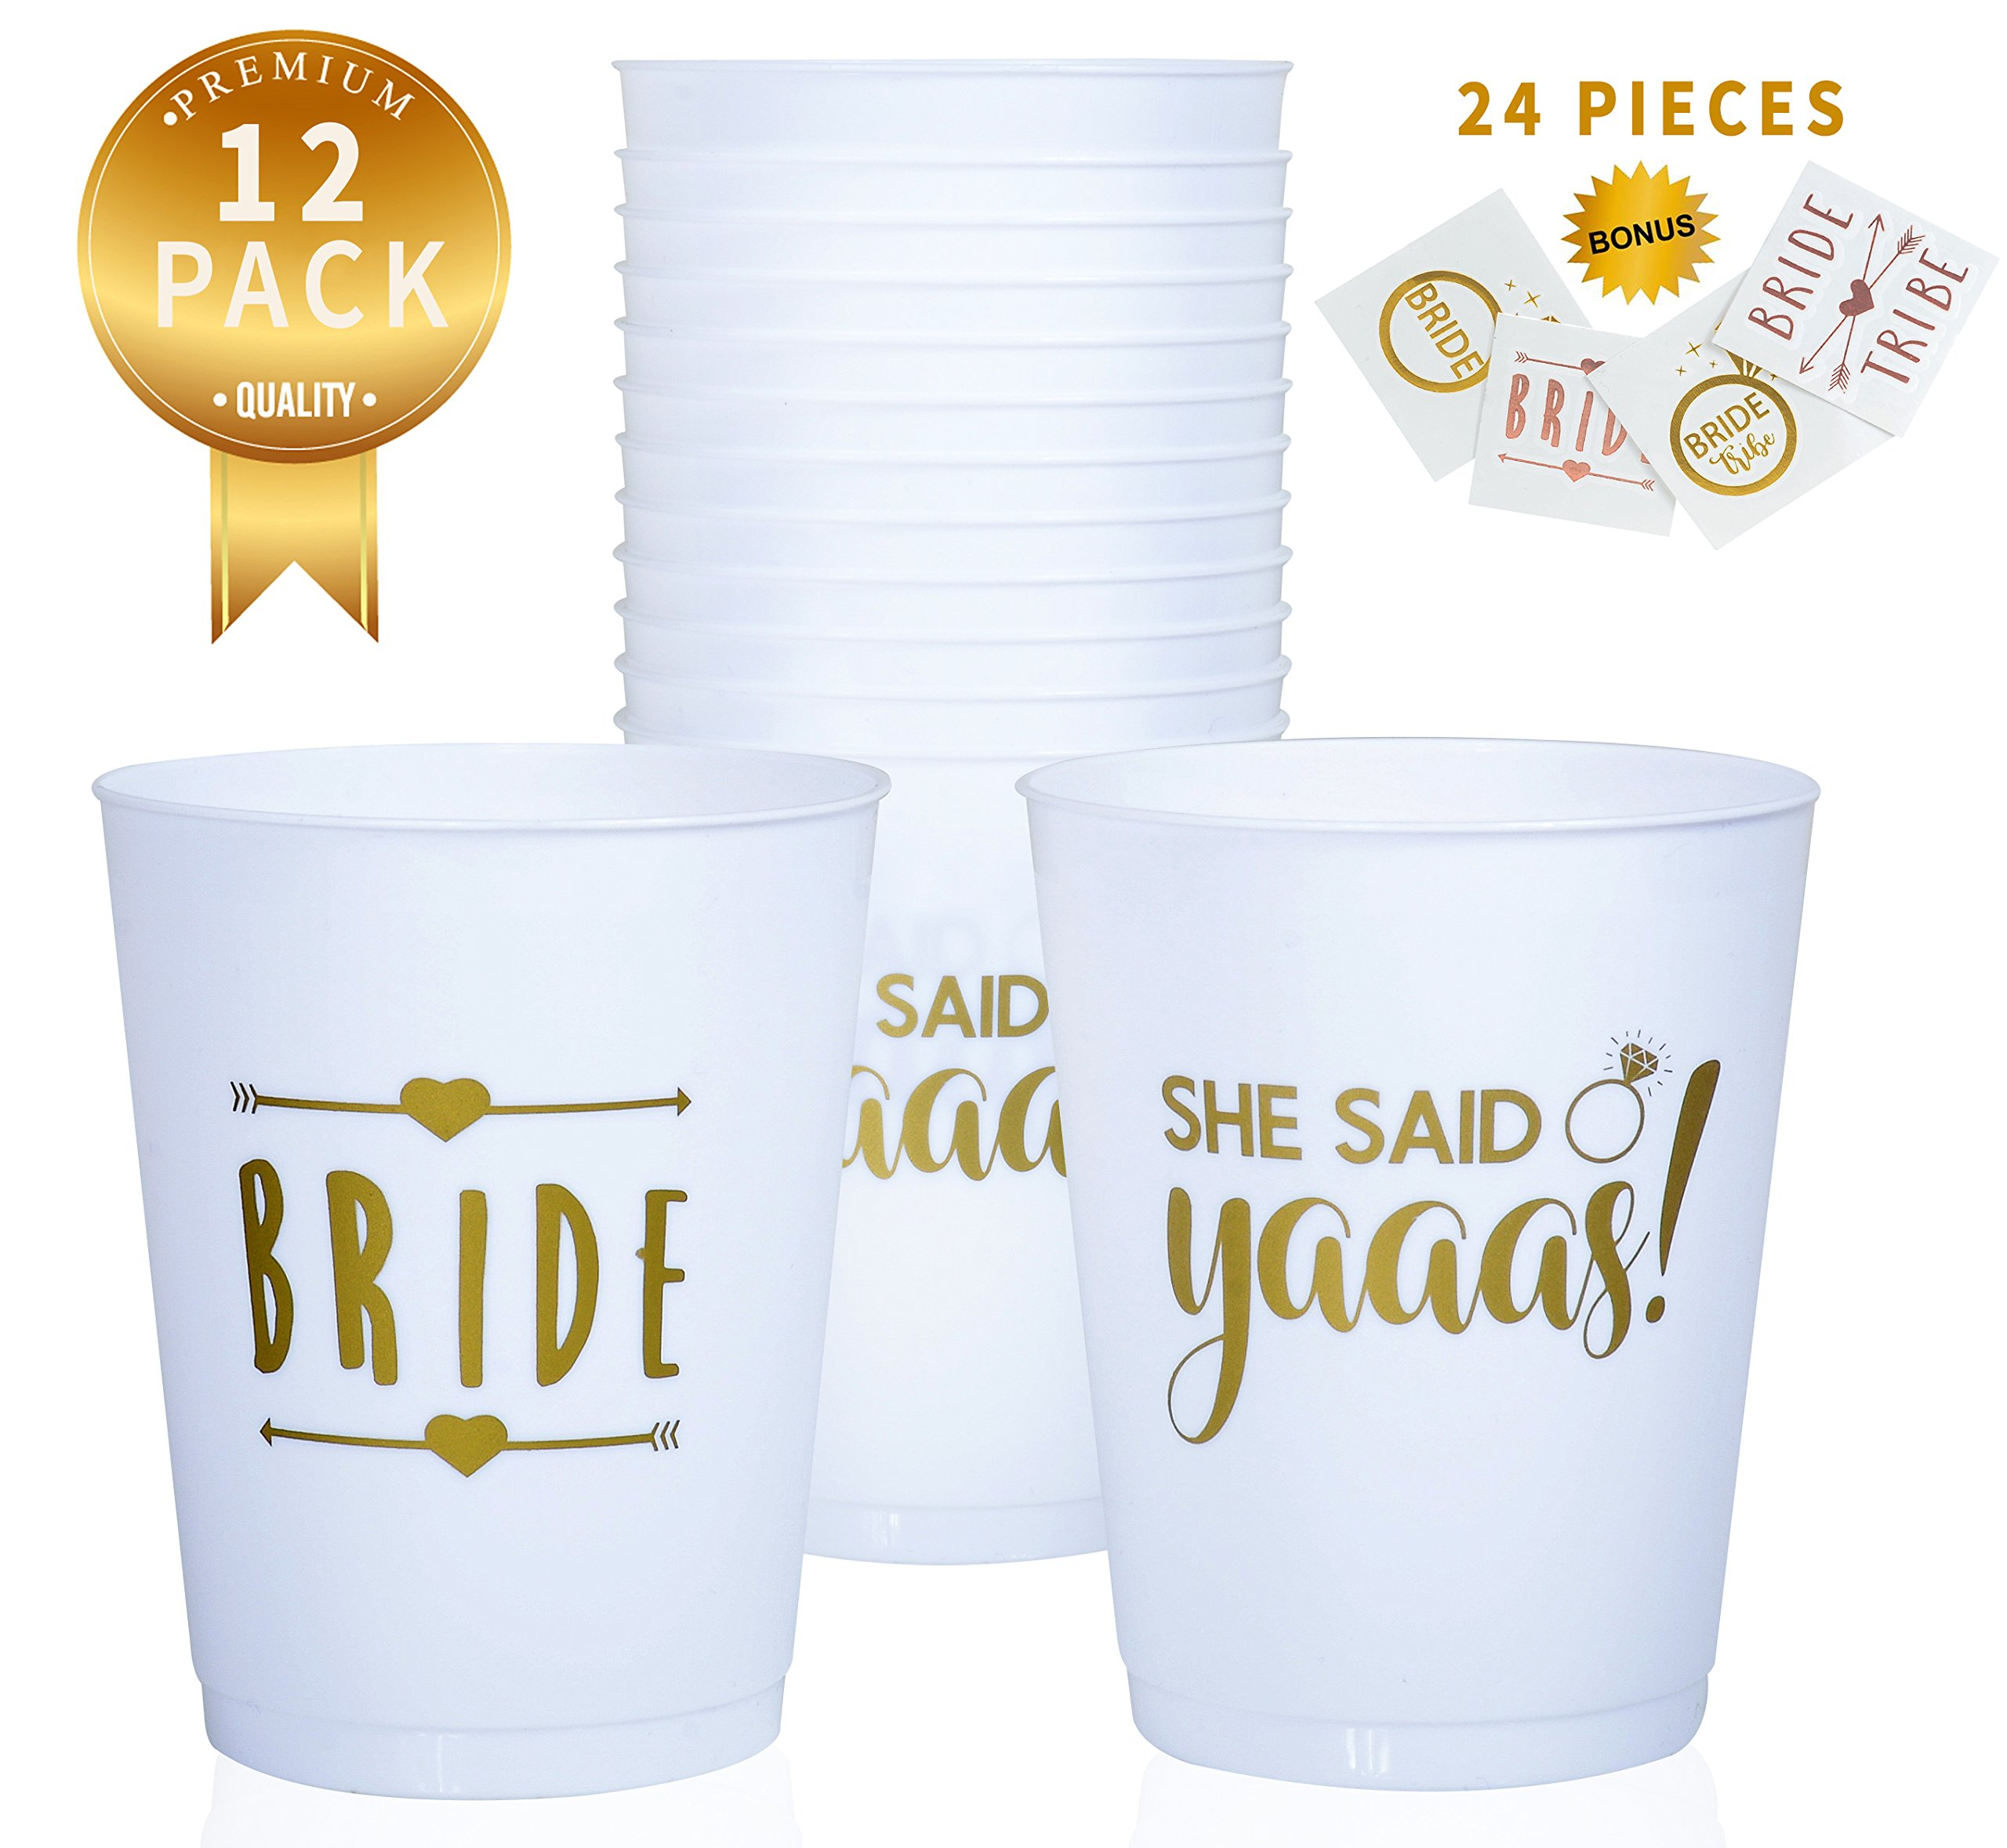 Buzzingbee bachelorette cups and tattoos 36 pieces, bachelorette party decorations, bridal party decorations, bride tribe cups, bride tribe tattoos, she said yaaas, bride tattoo